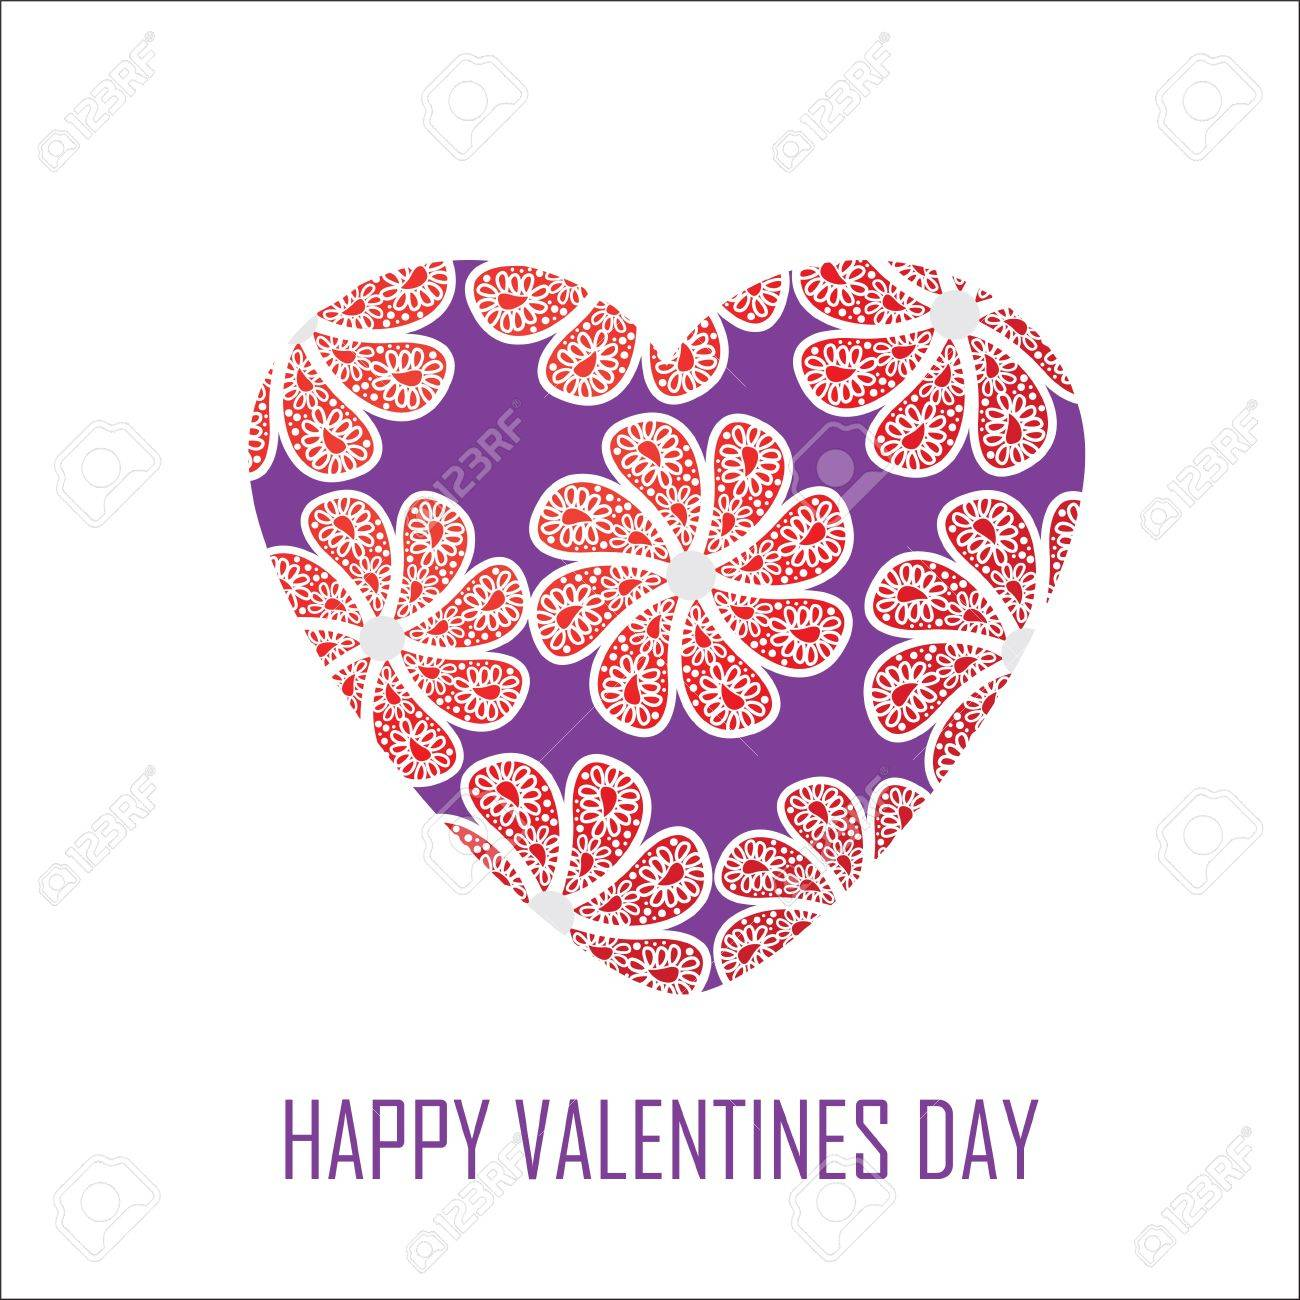 Purple heart with red flowers for Valentine's Day Stock Vector - 21894996